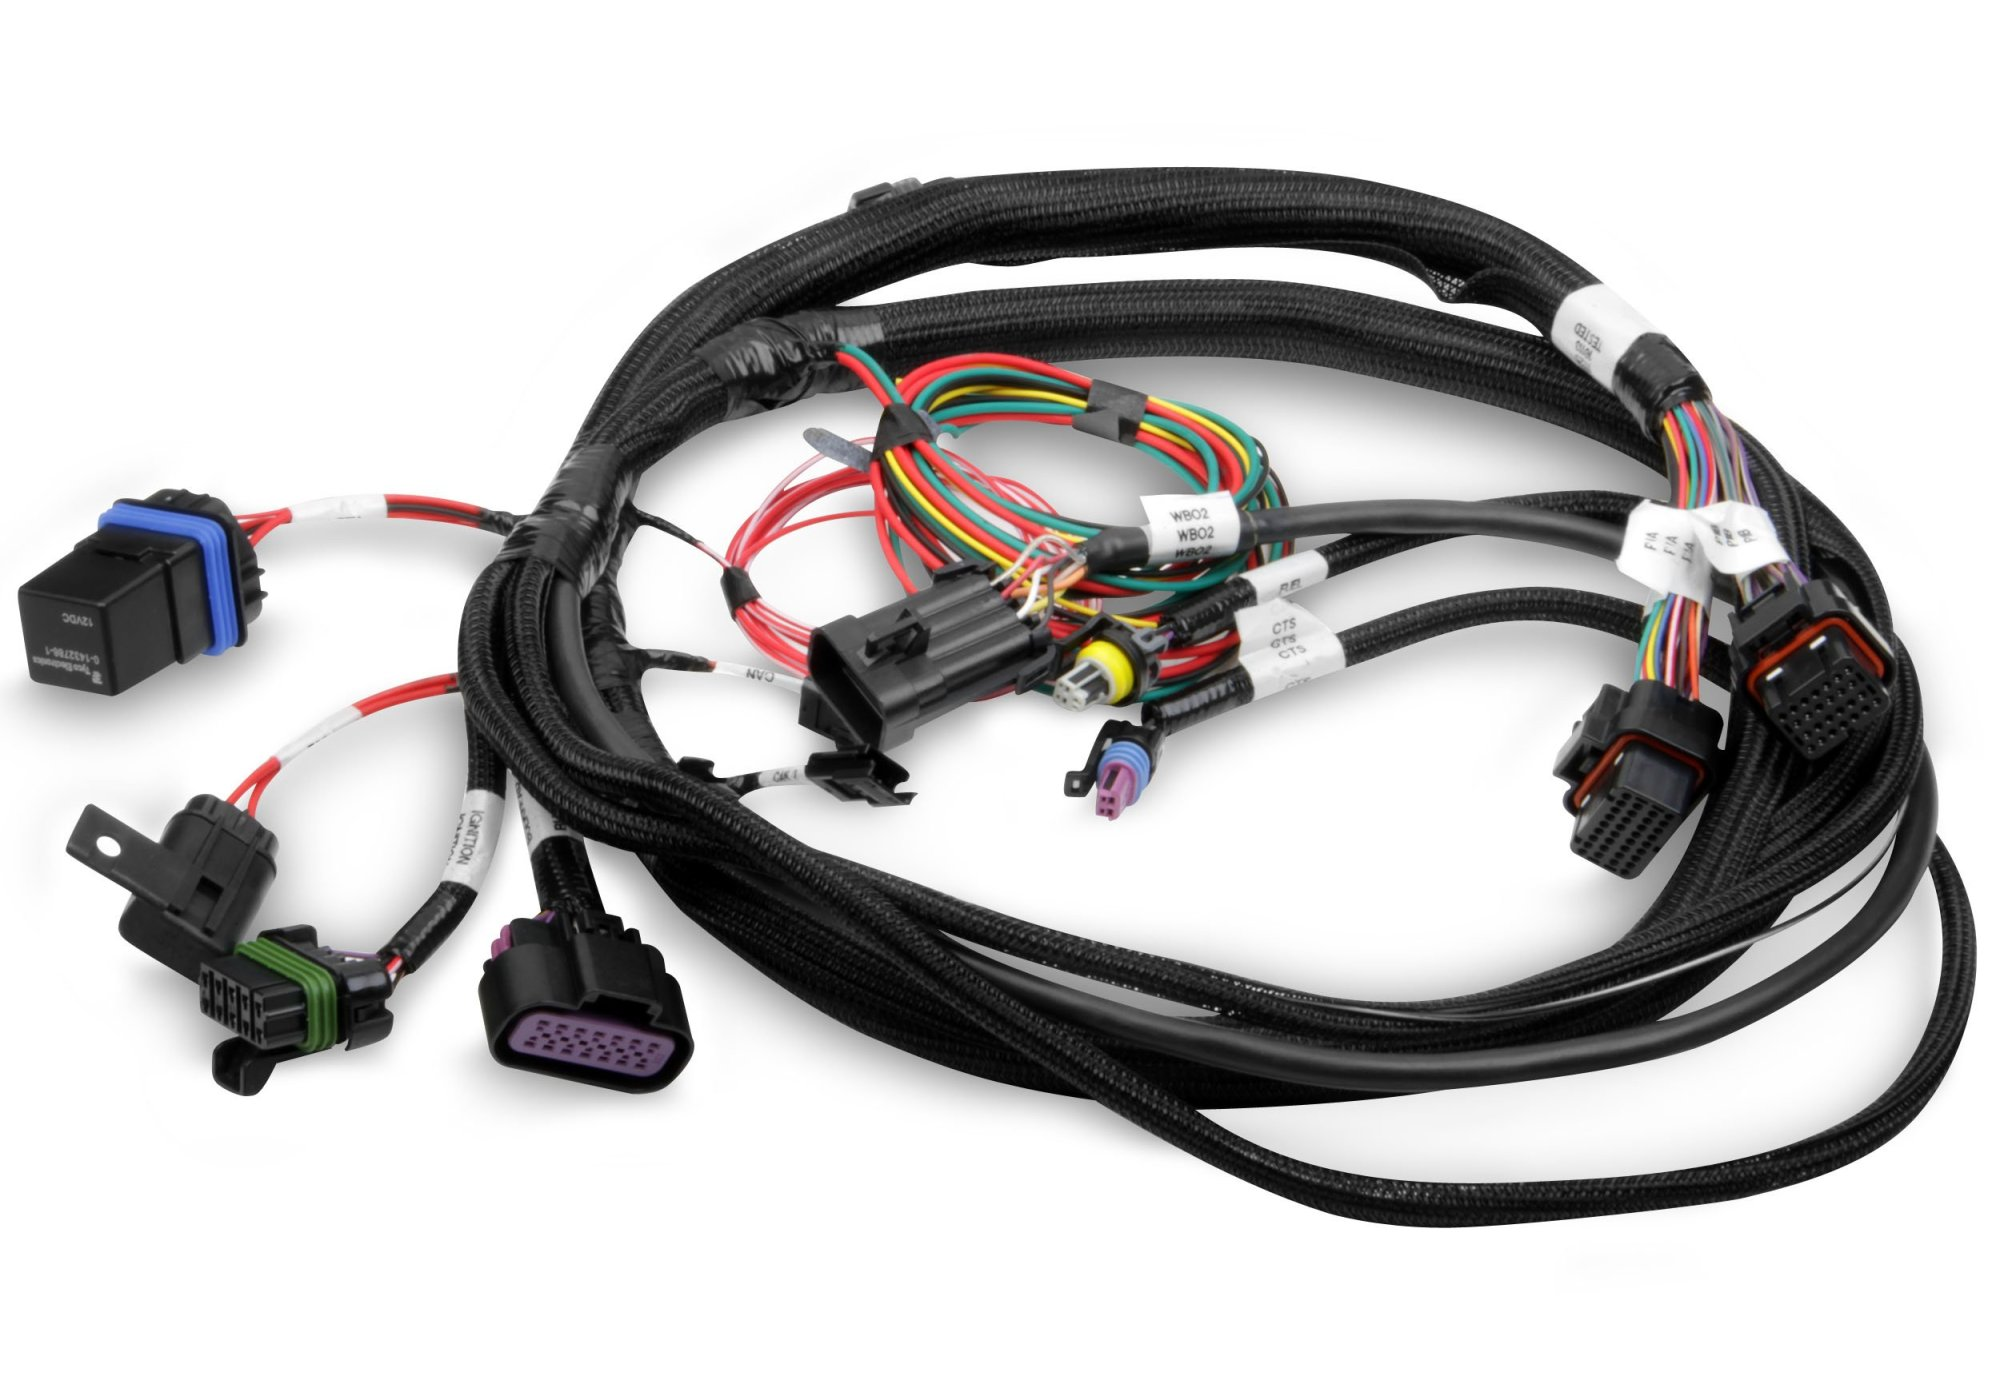 hight resolution of holley efi 558 414 terminator main harness holley projection wiring harness 558 414 terminator main harness